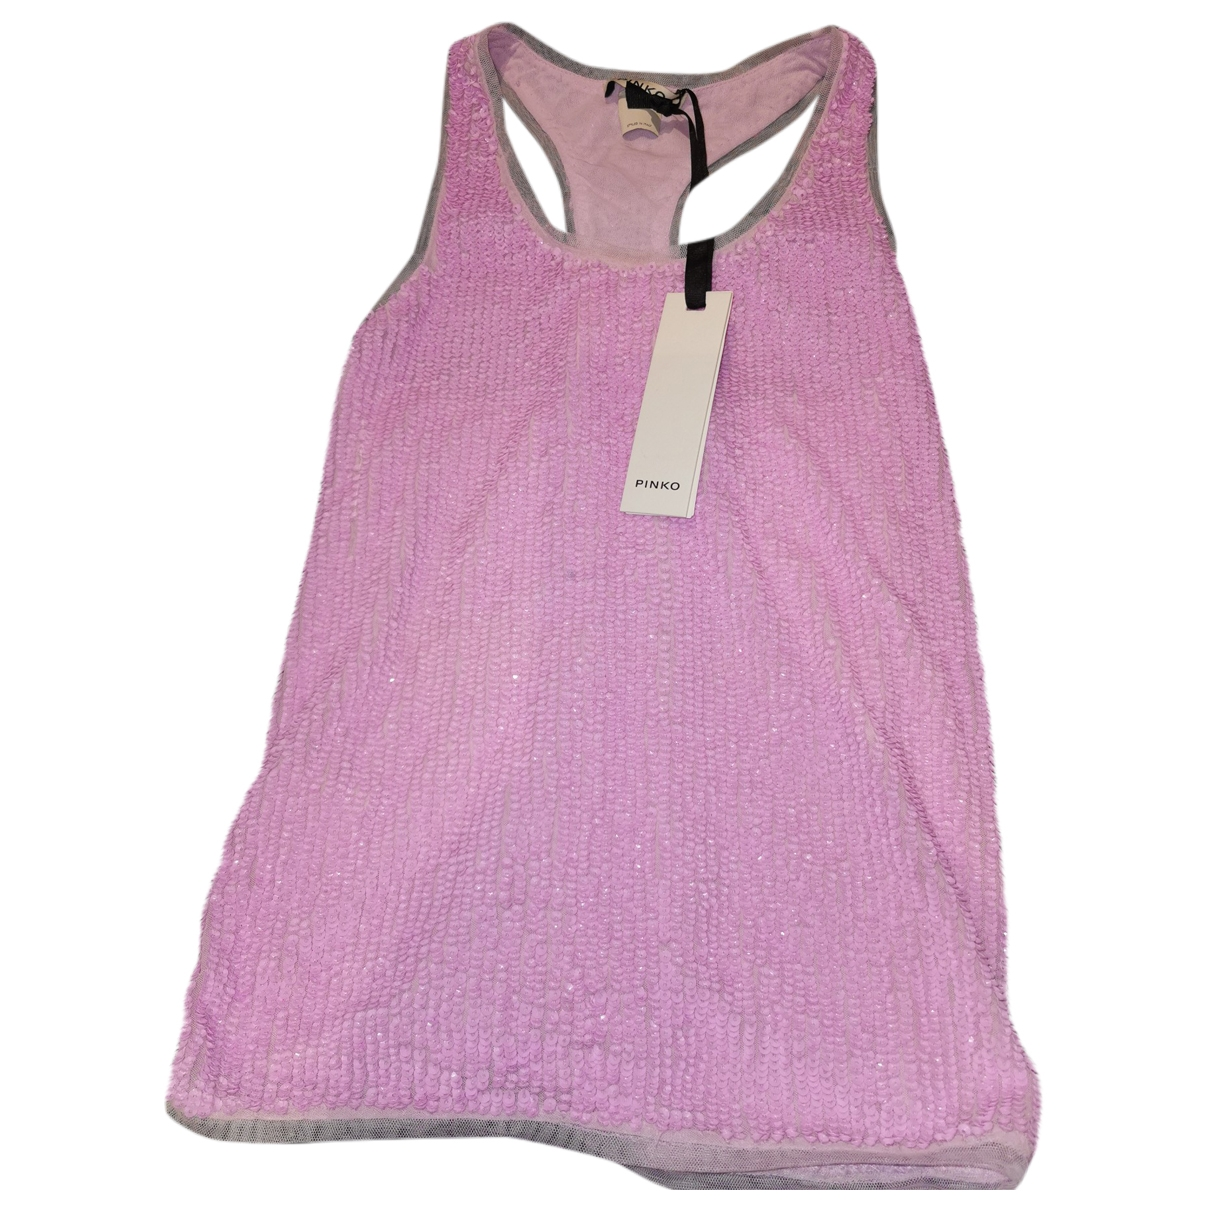 Pinko \N Pink Glitter  top for Women S International